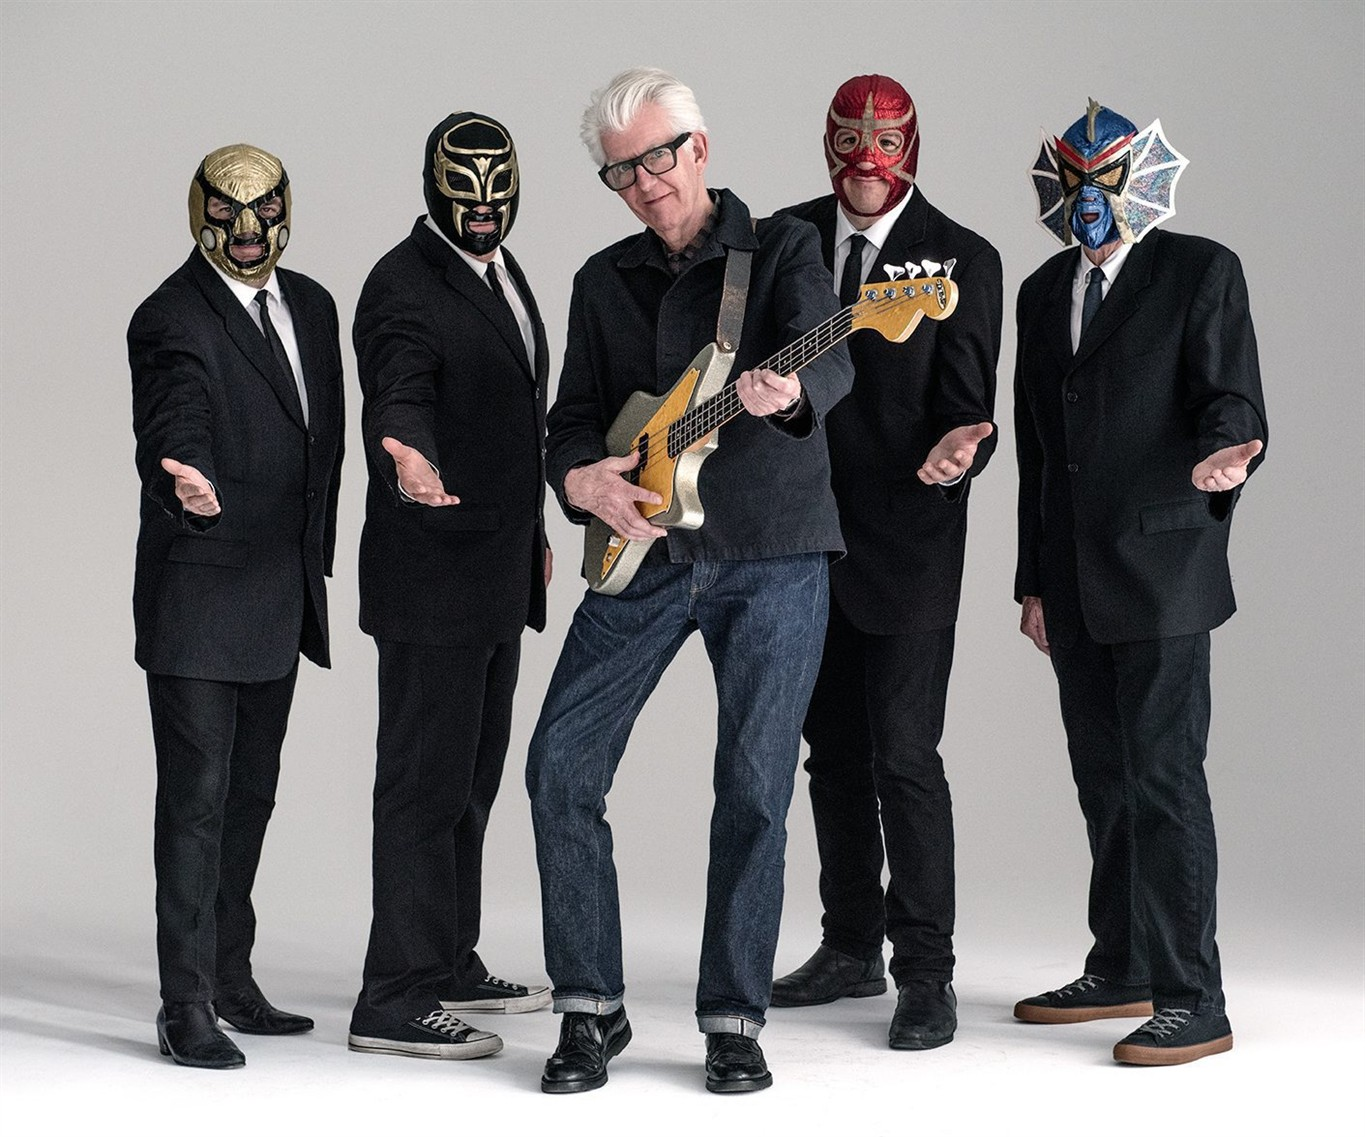 Nick Lowe rediscovers roots with Los Straitjackets - 660 NEWS